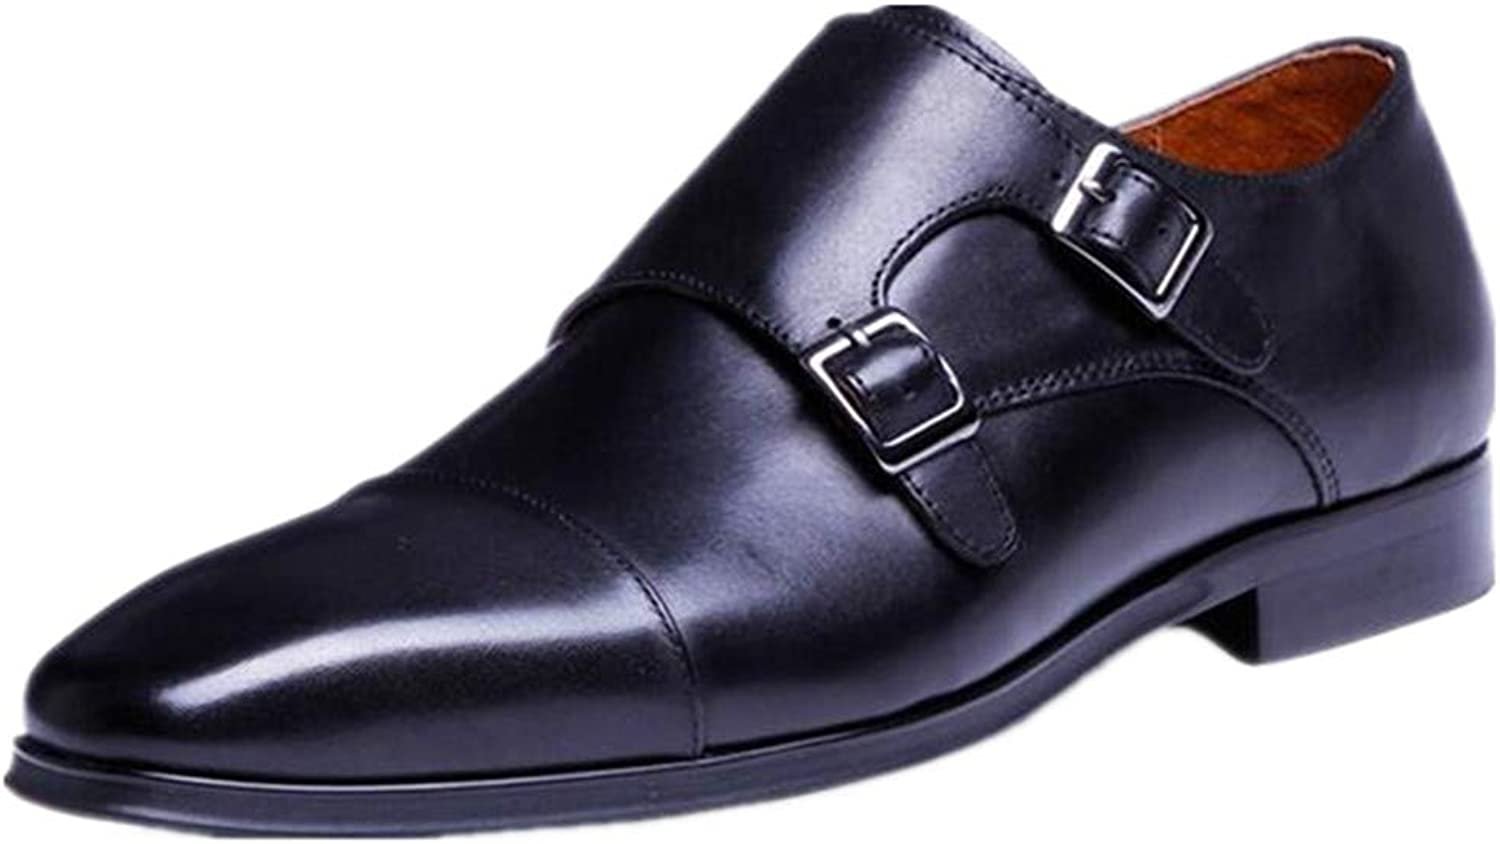 AHUQI Men's European and American High-end Buckle Spring Large Size shoes